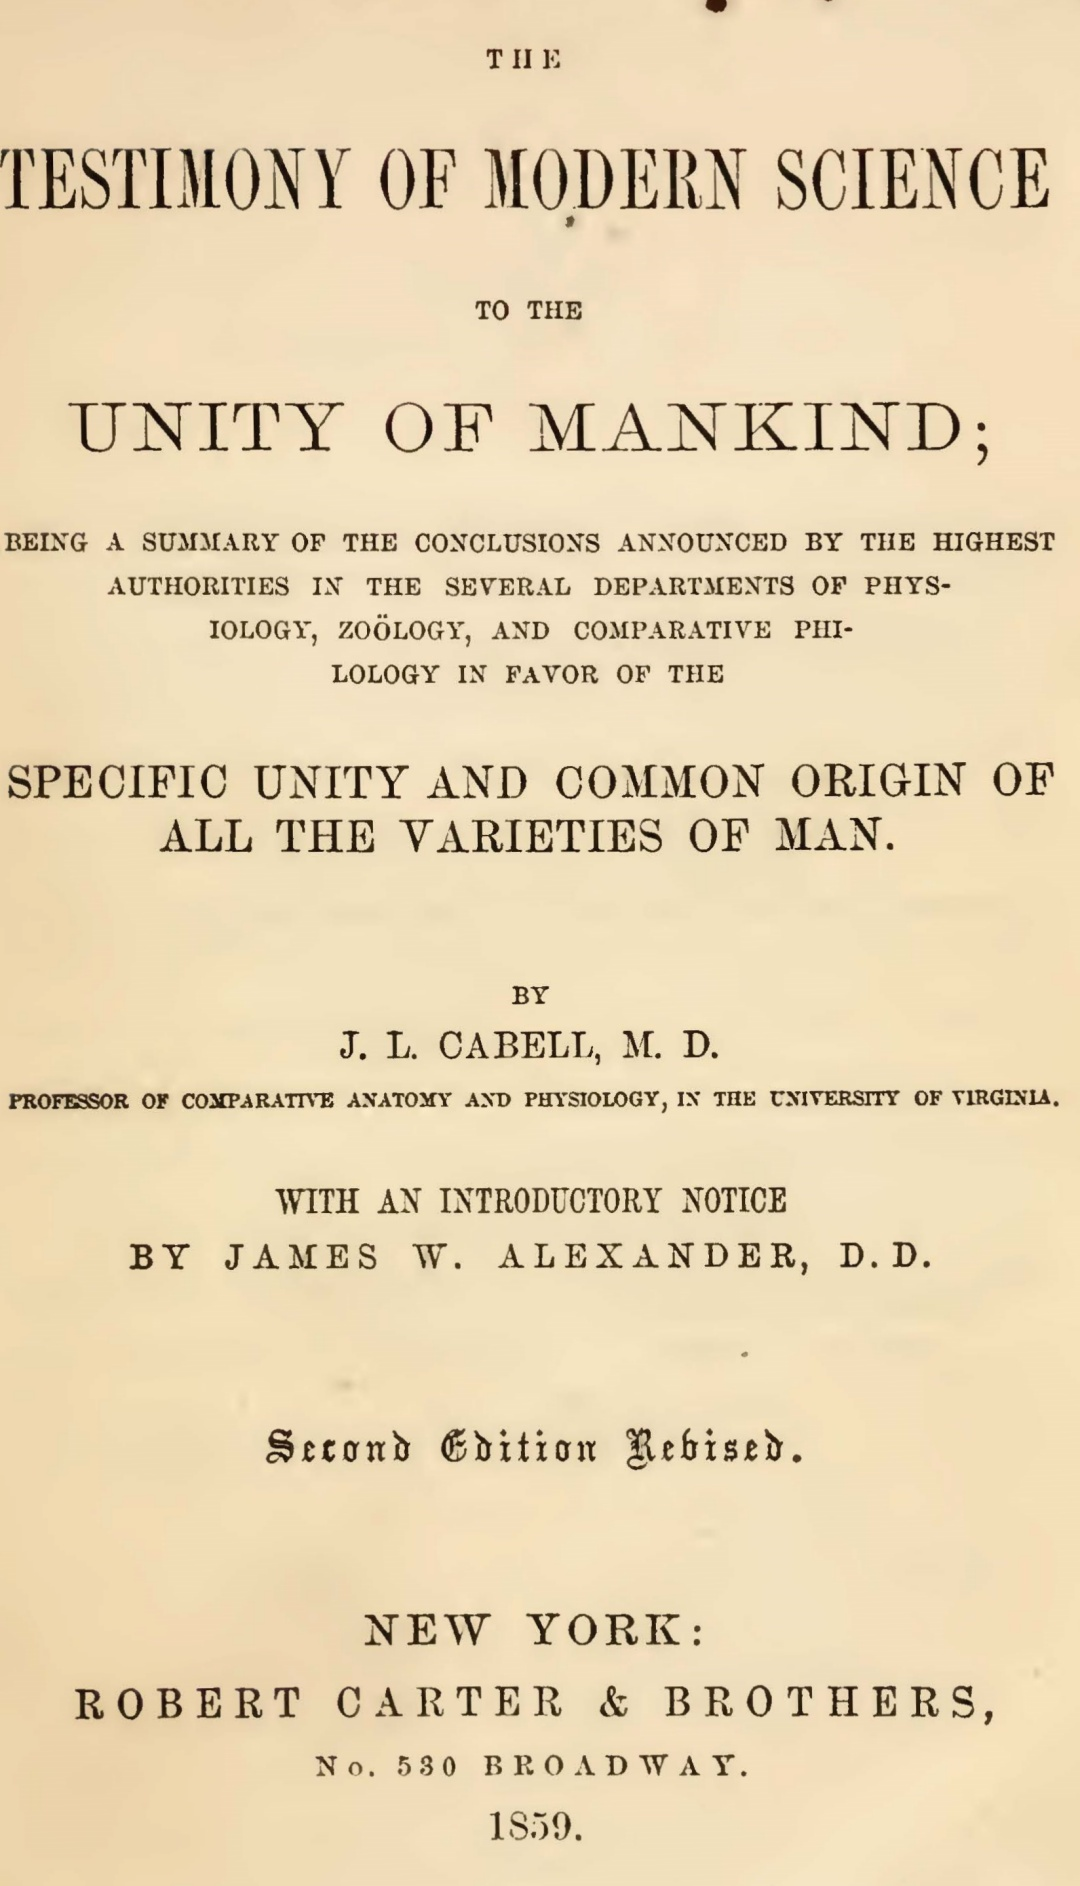 Alexander, James Waddel, Introductory Notice to Cabell's Testimony Title Page.jpg